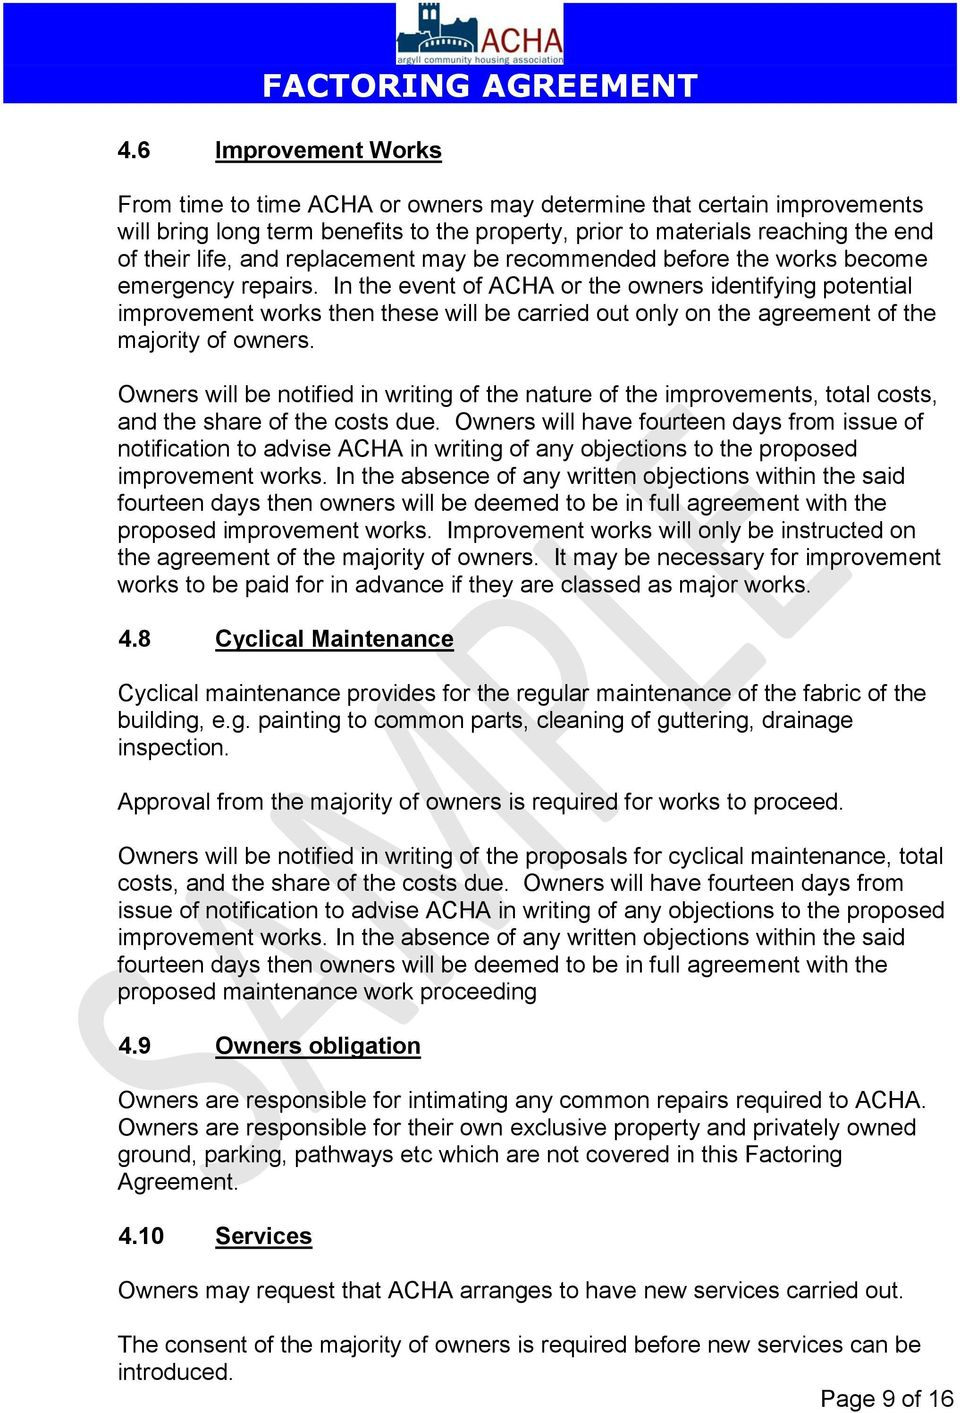 In the event of ACHA or the owners identifying potential improvement works then these will be carried out only on the agreement of the majority of owners.